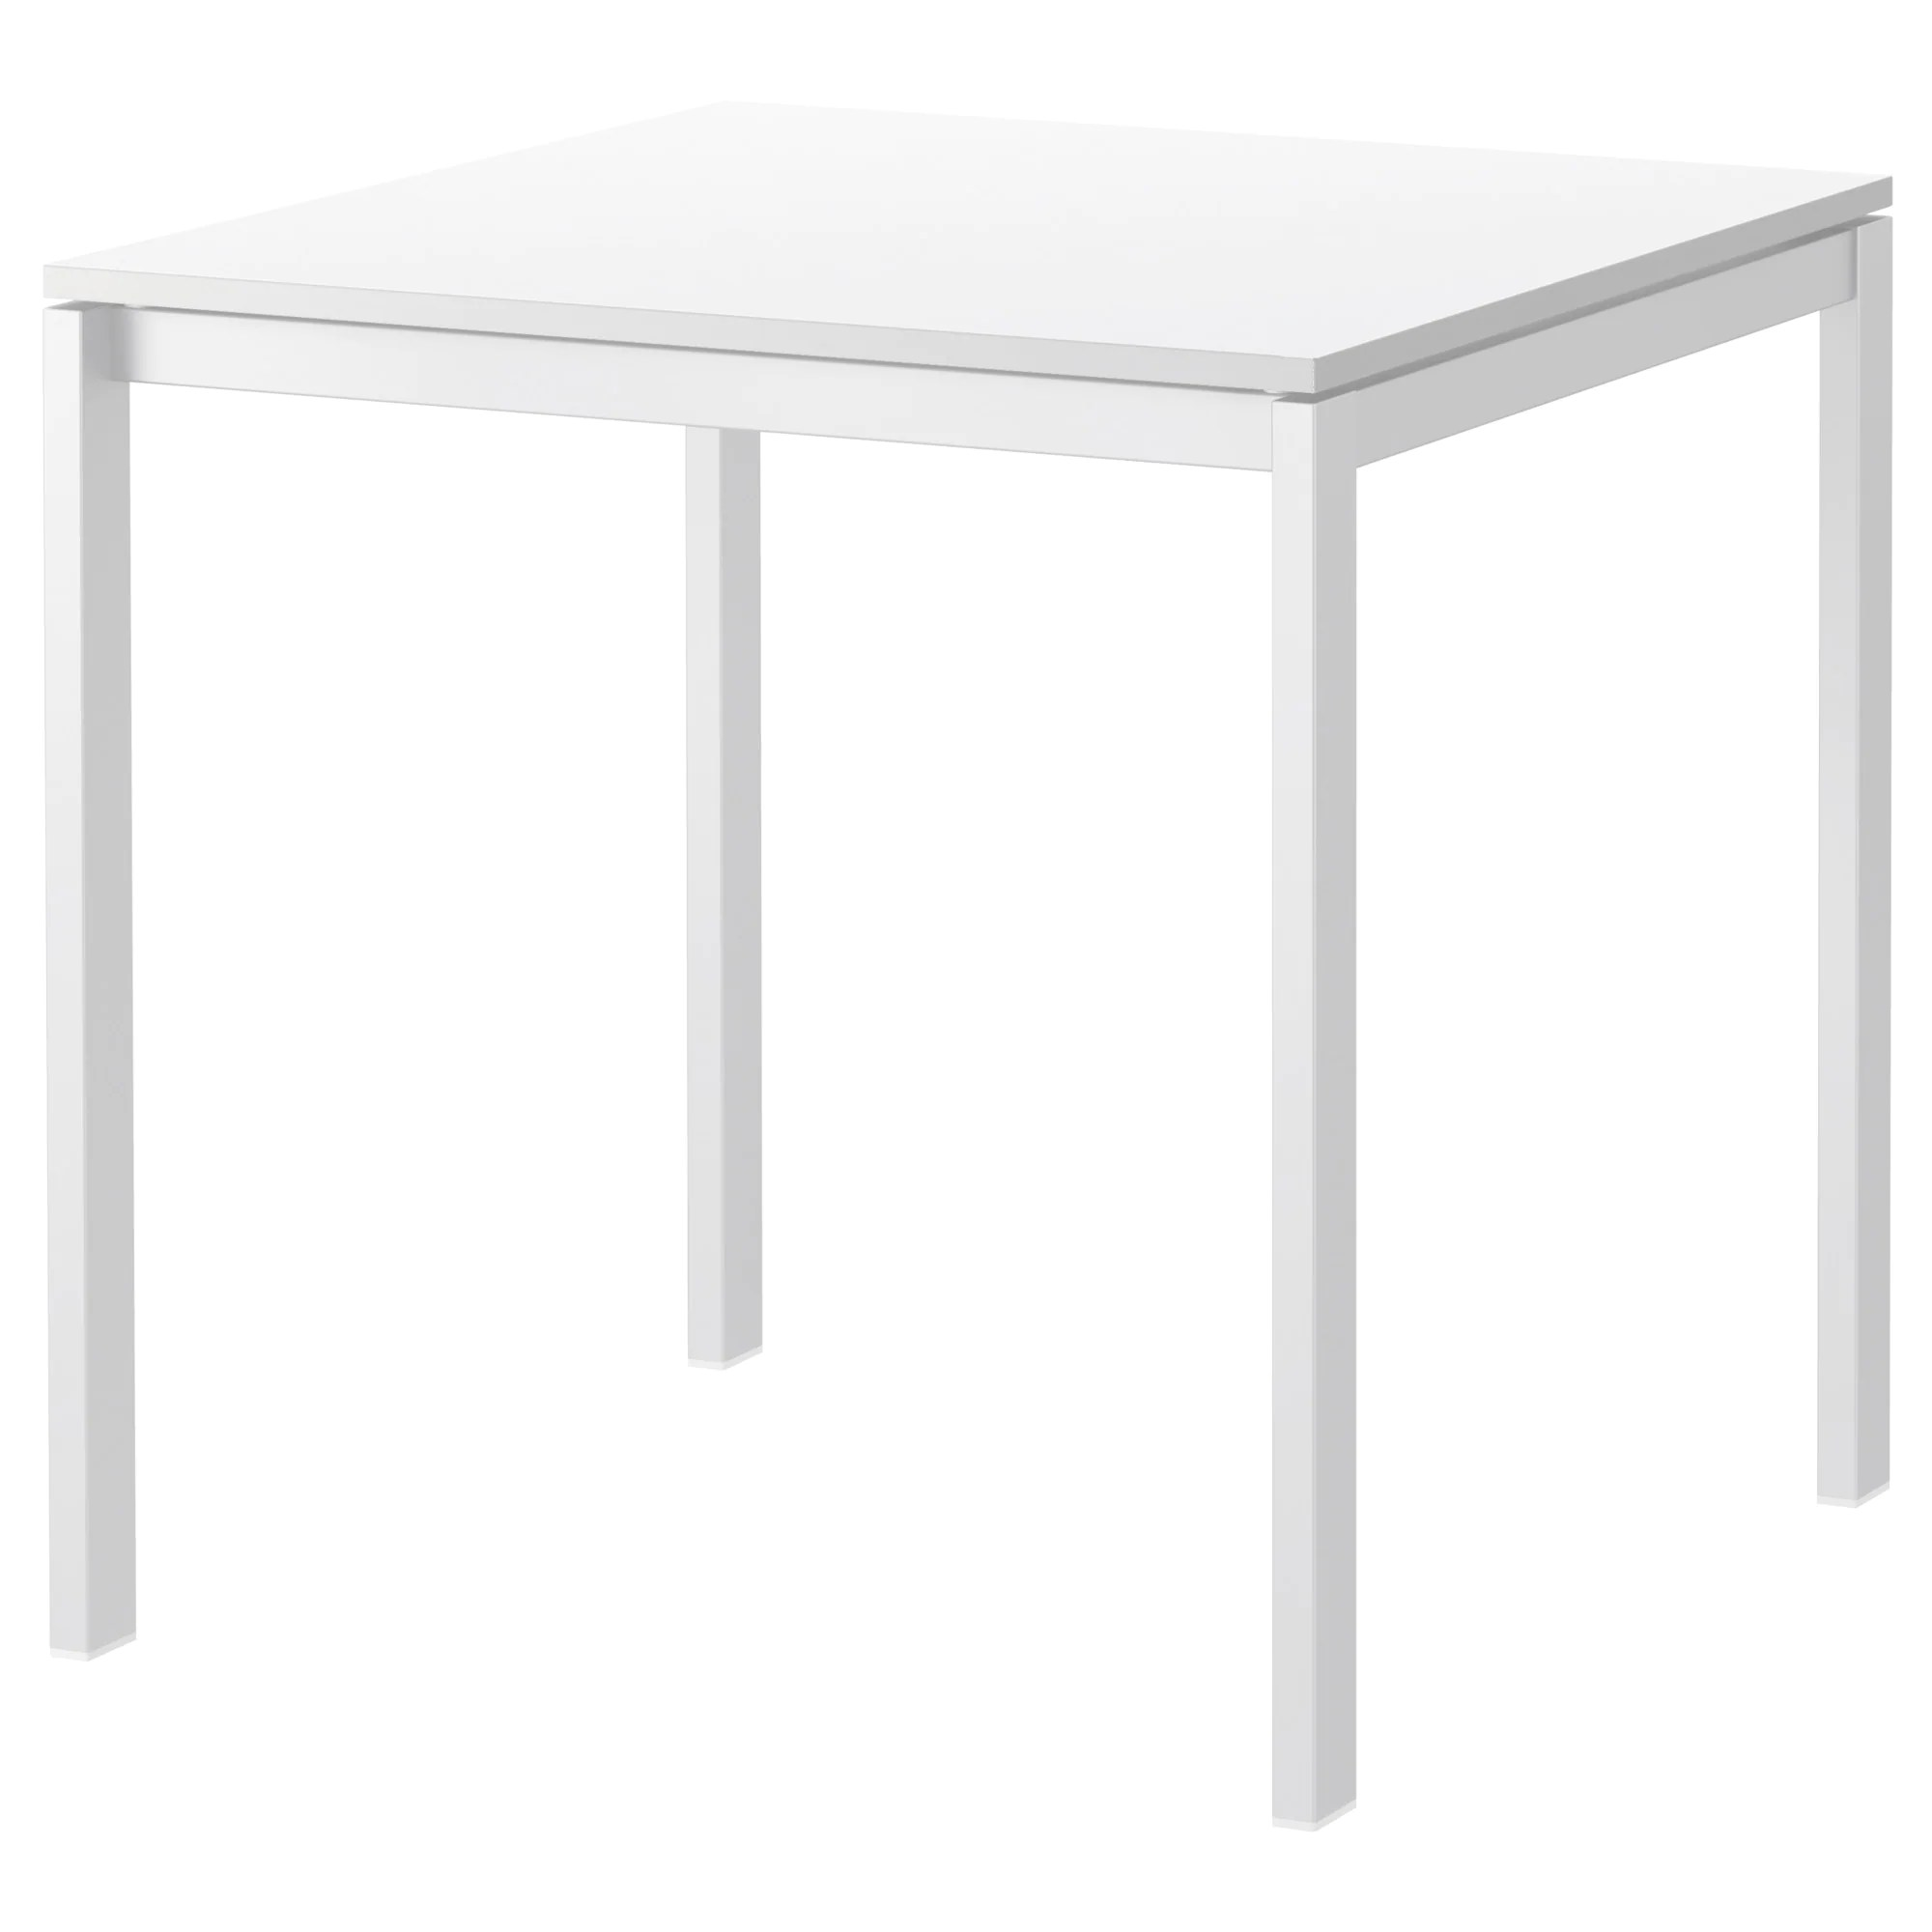 Ikea Table Melltorp Table White